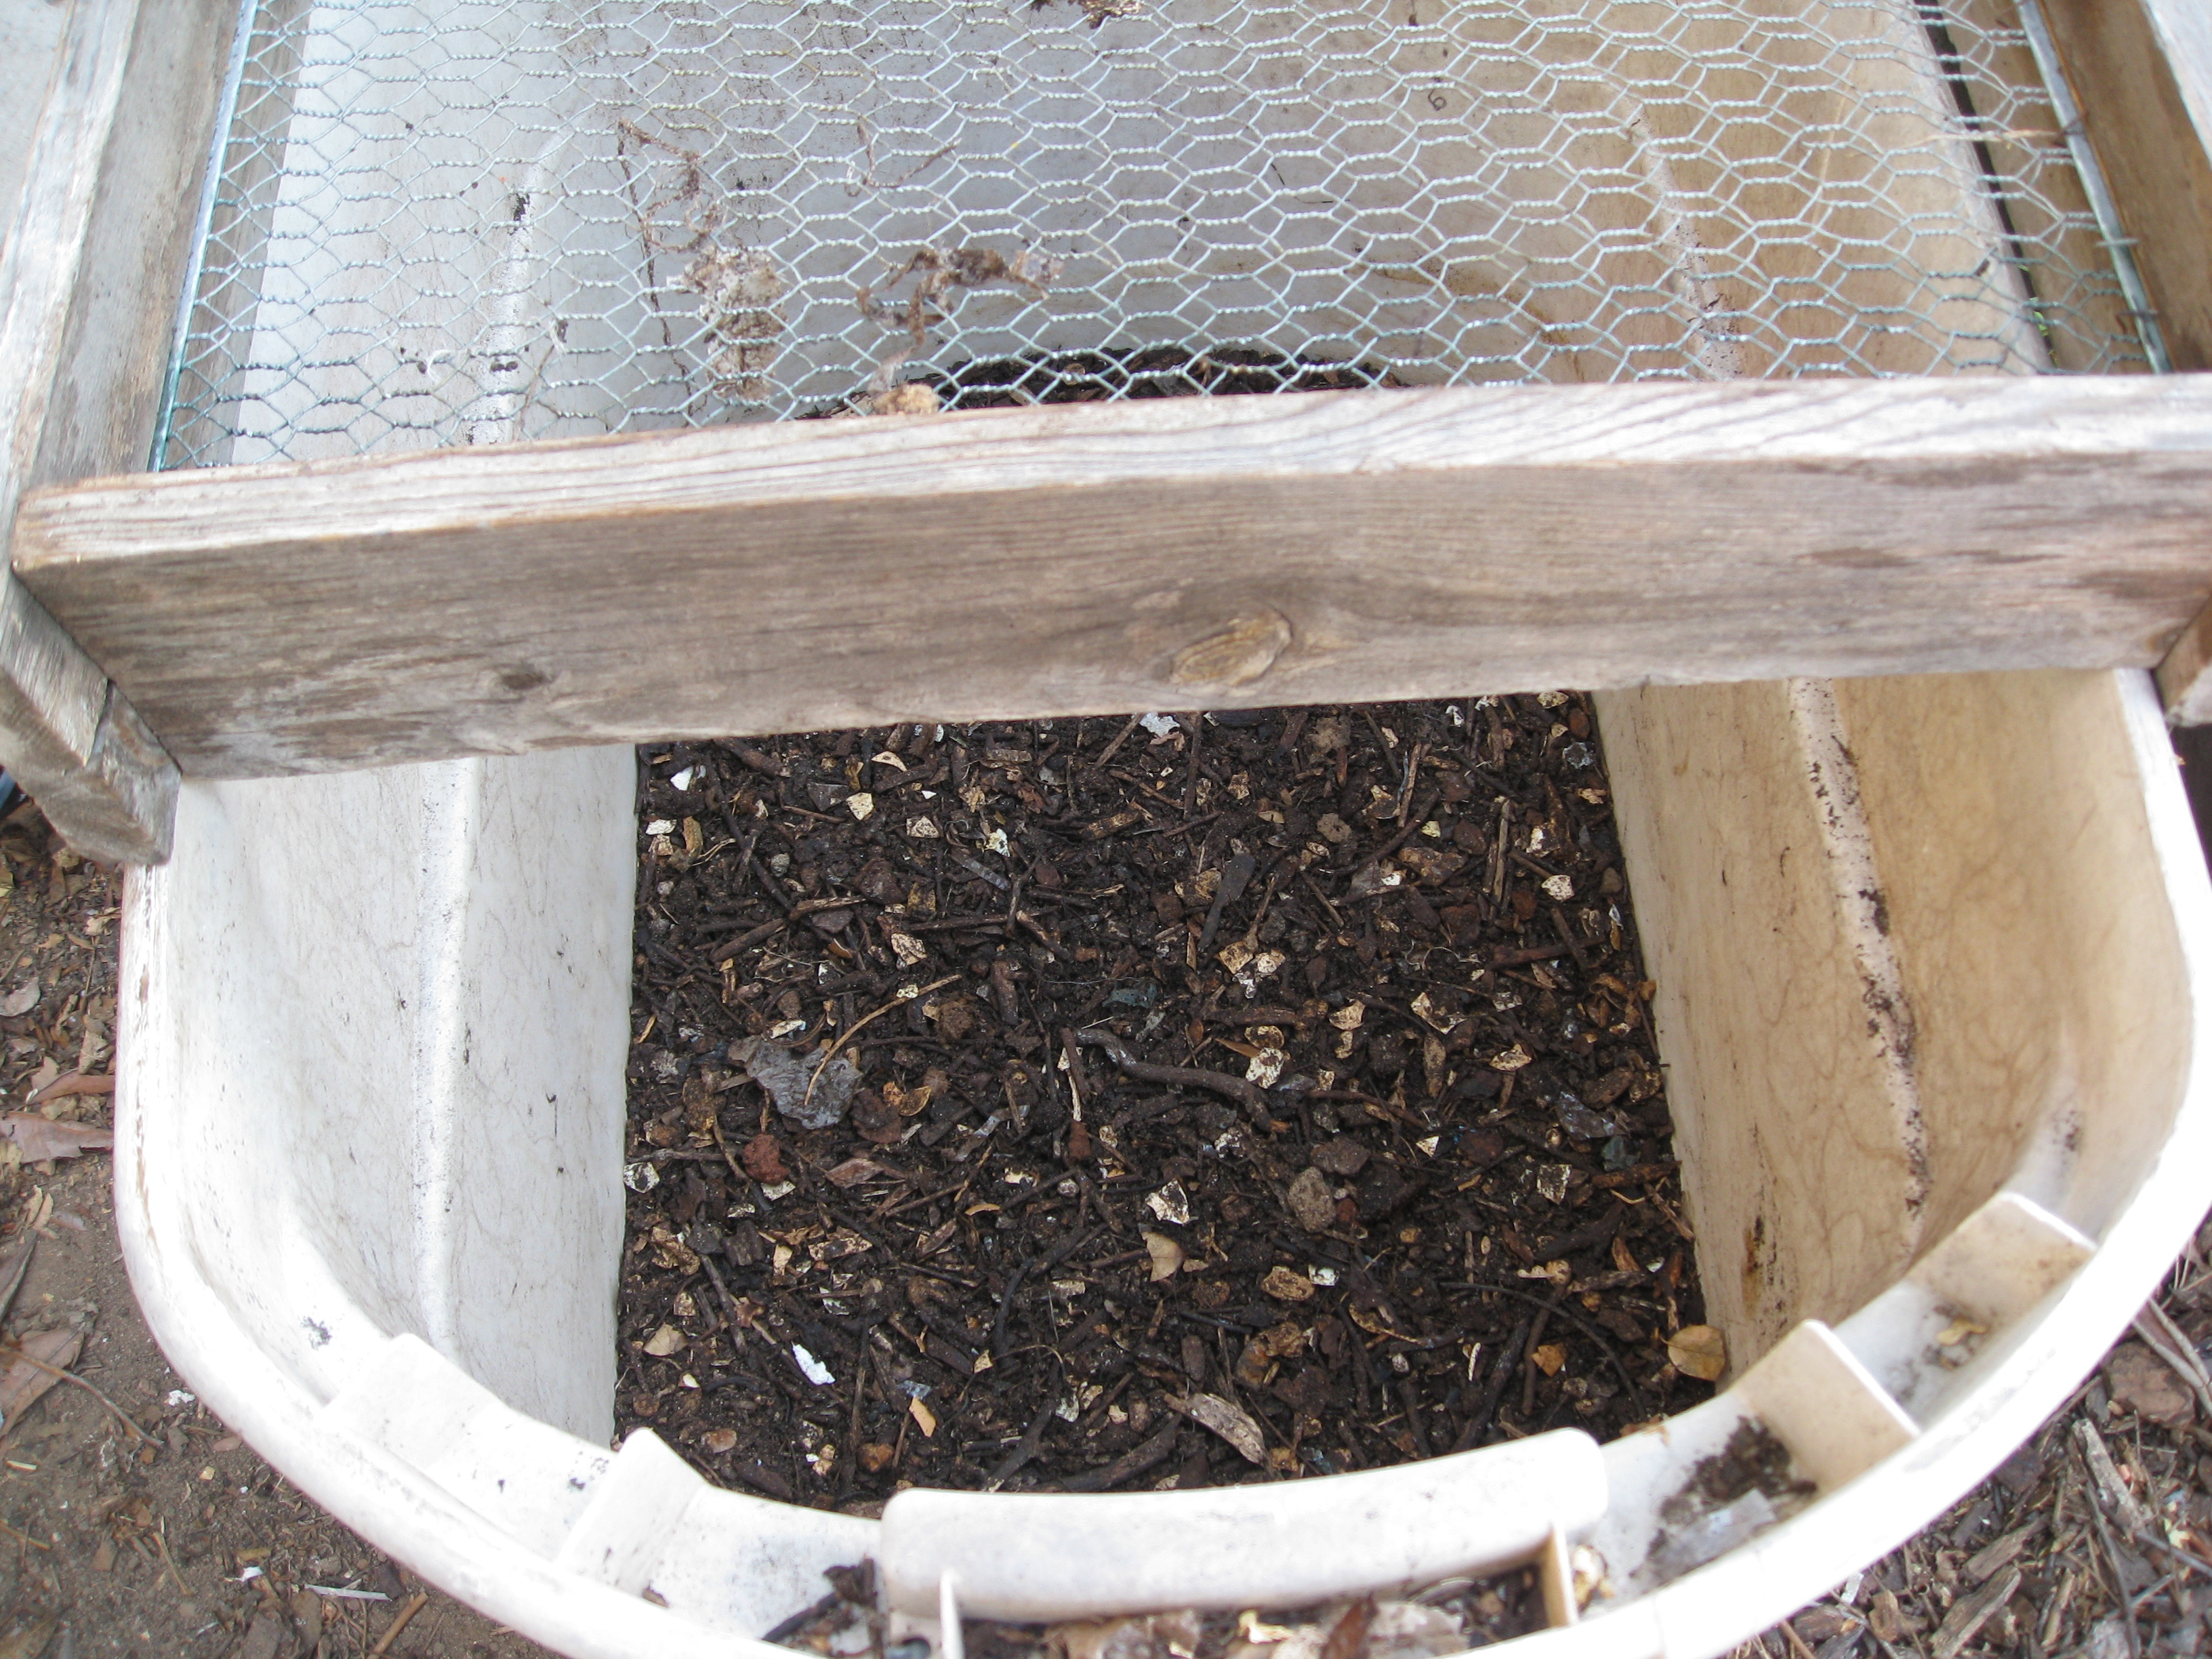 Sift compost before adding it to your garden beds.